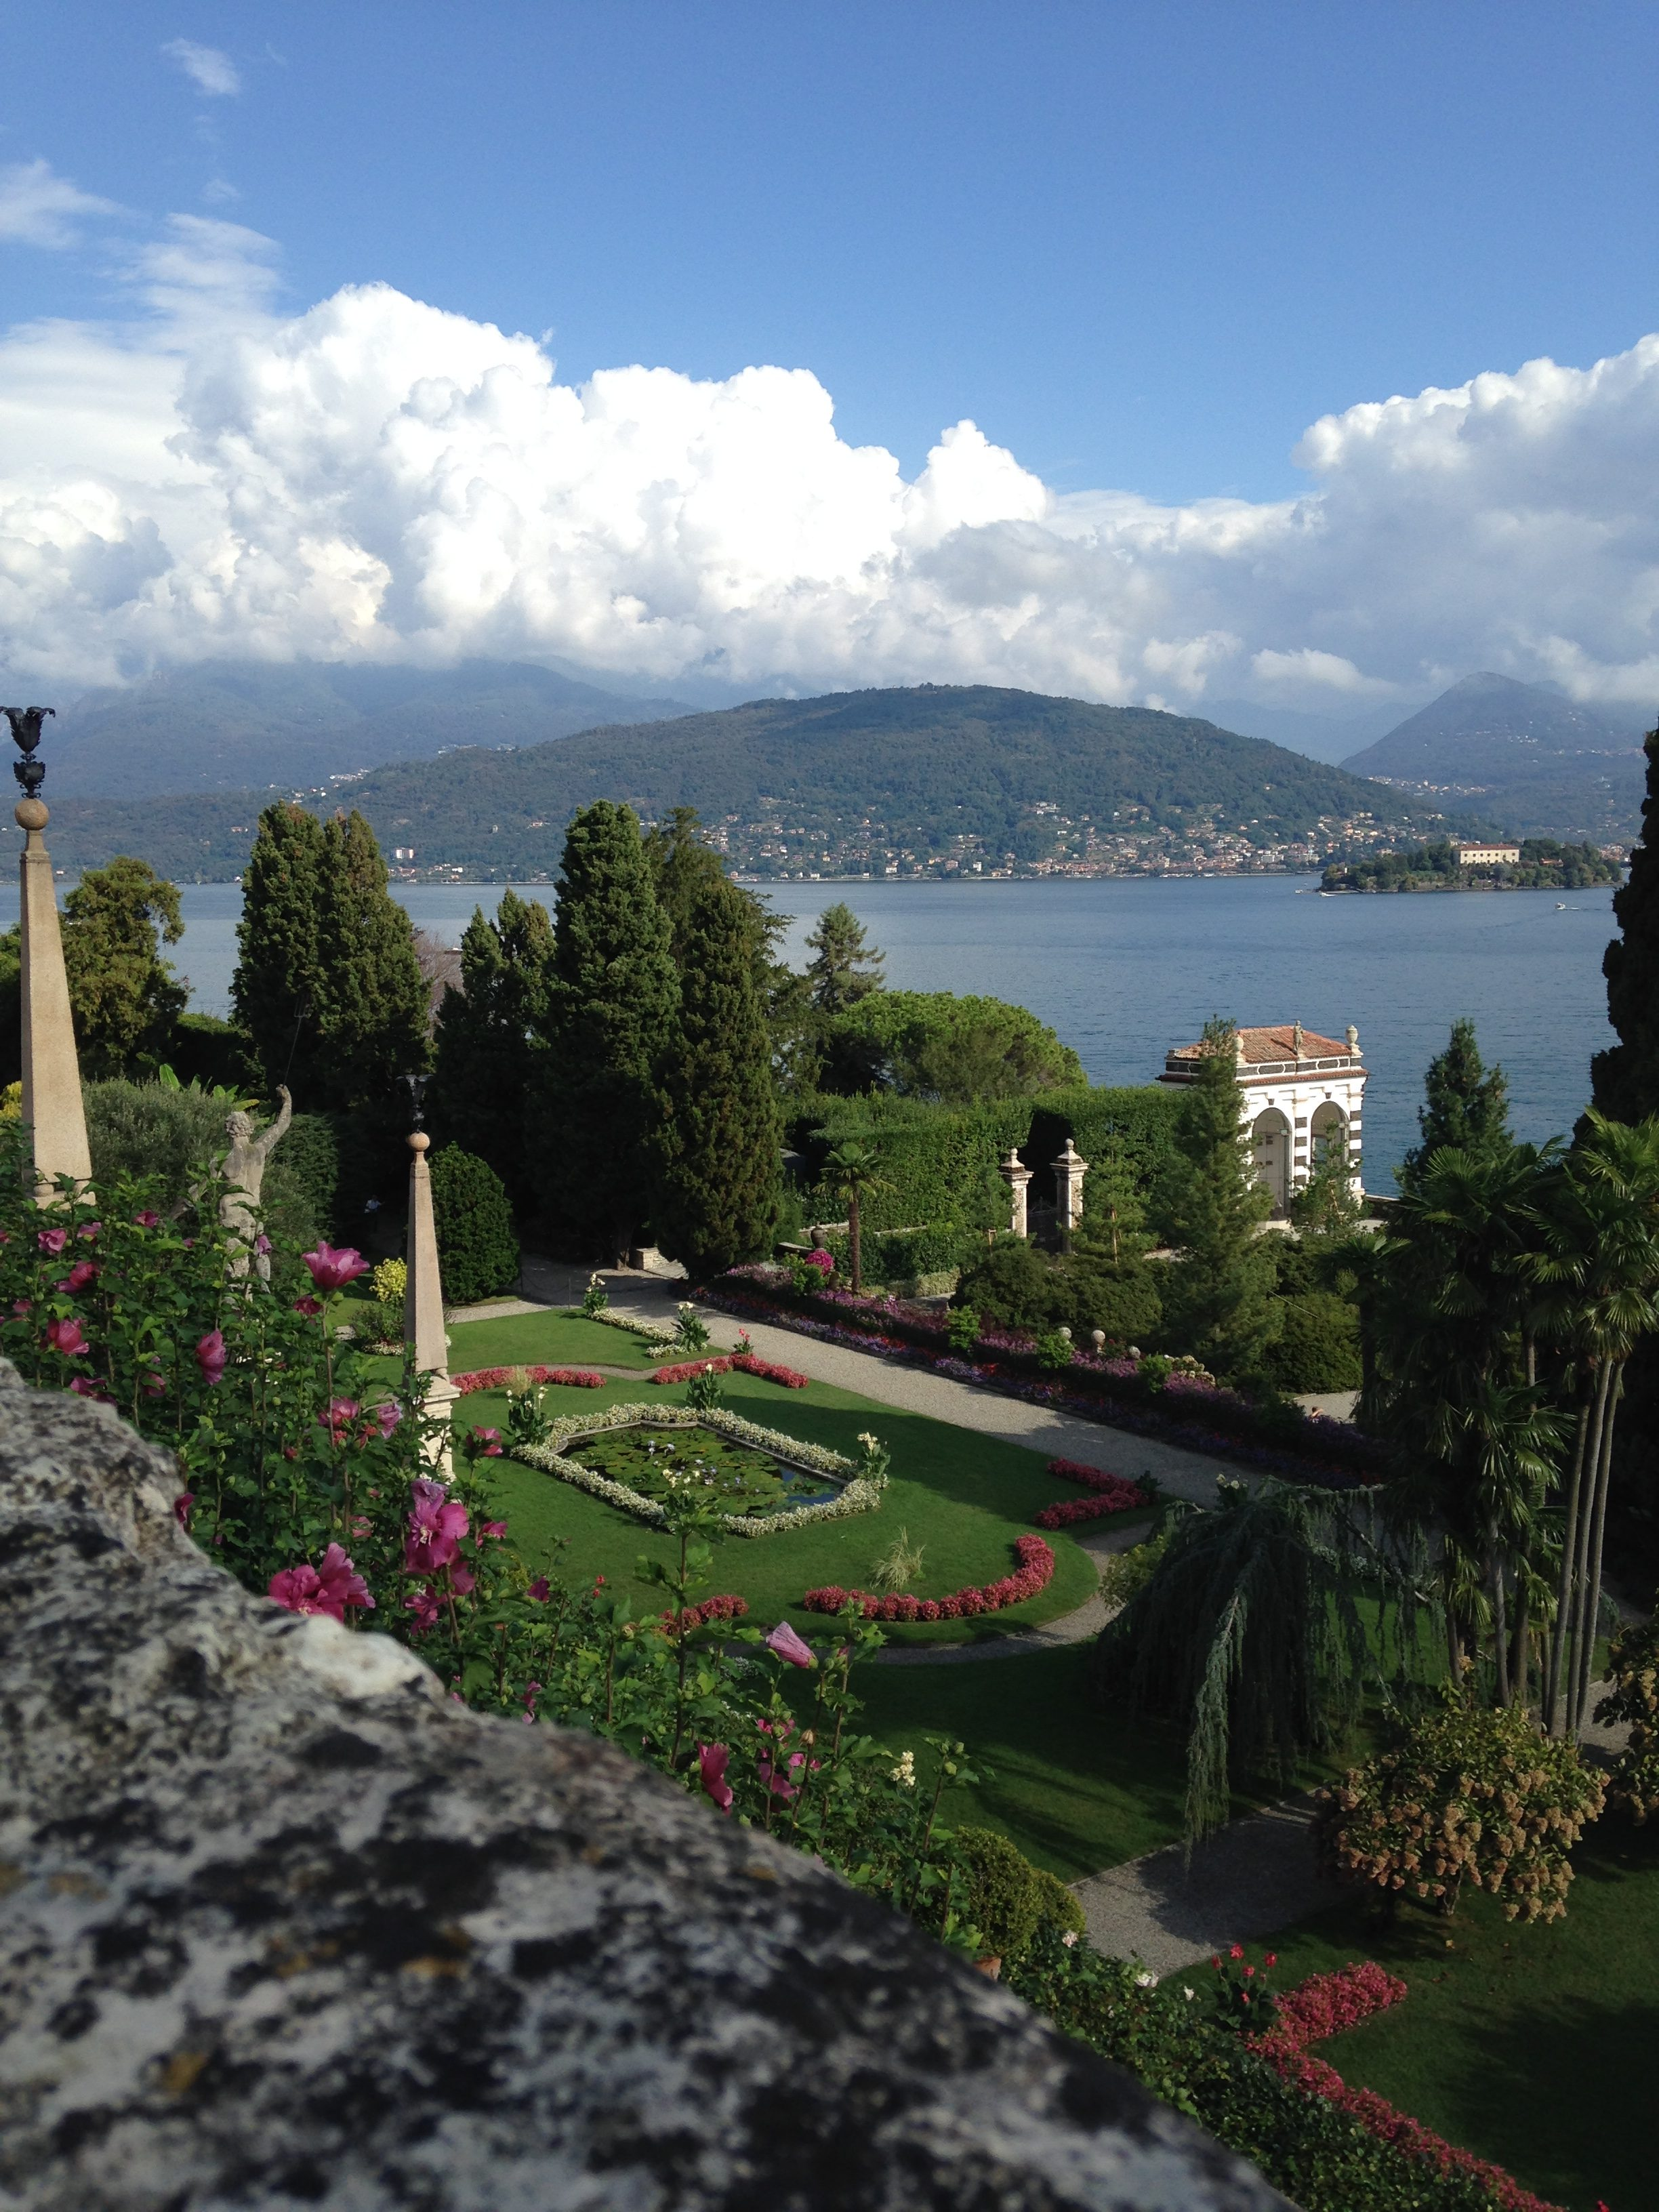 Gardens on Isola Bella in Lake Maggorie, Northern Italy, September 2016